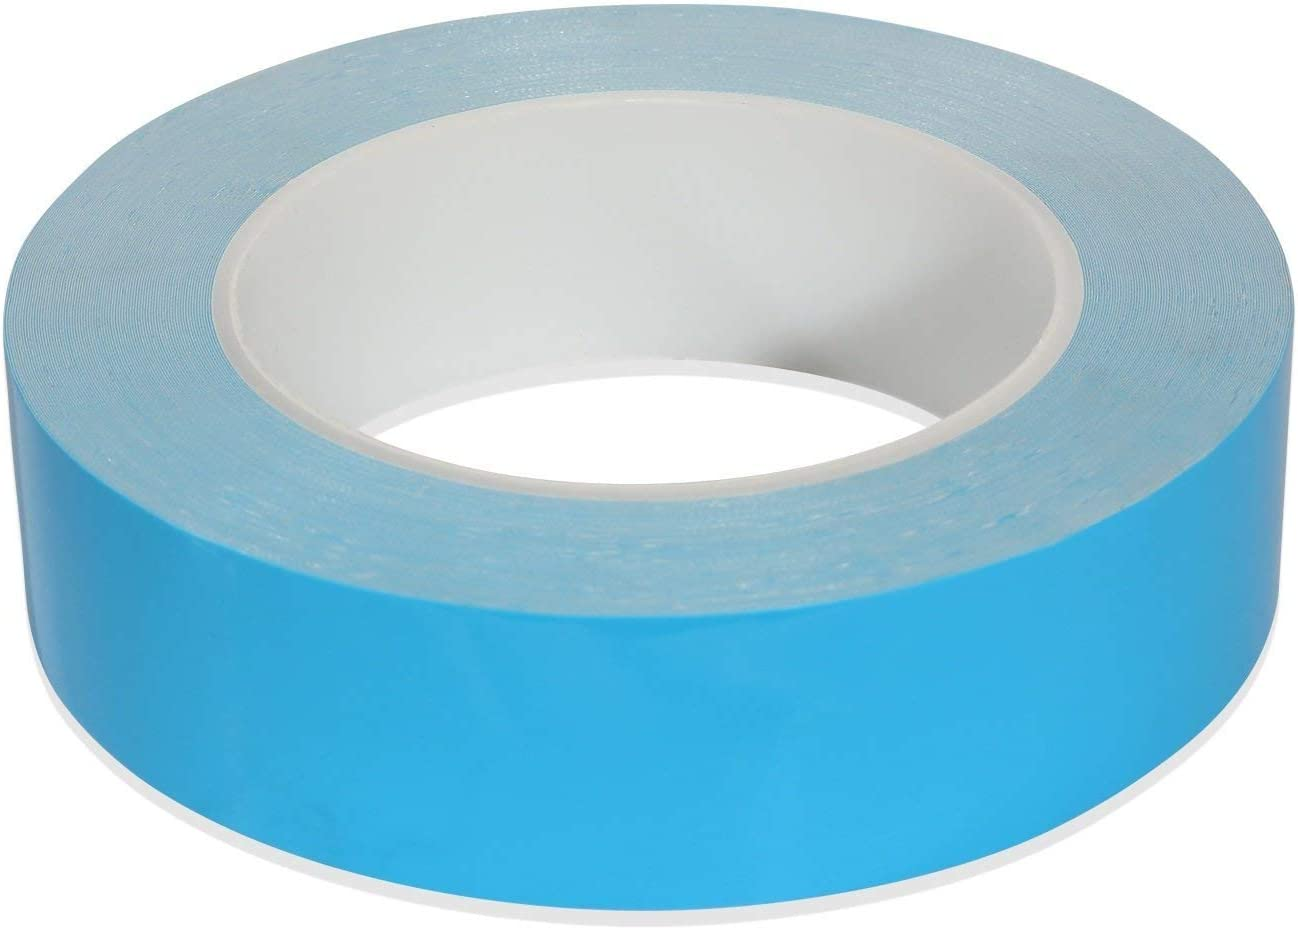 Thermal AdhesiveTape 25M x 30mm x 0.25mm , High Performance Double Sided Adhesive Thermally Conductive Tape for Heatsinks , LED Lights,IC Chip, Computer CPU, GPU ,Modules